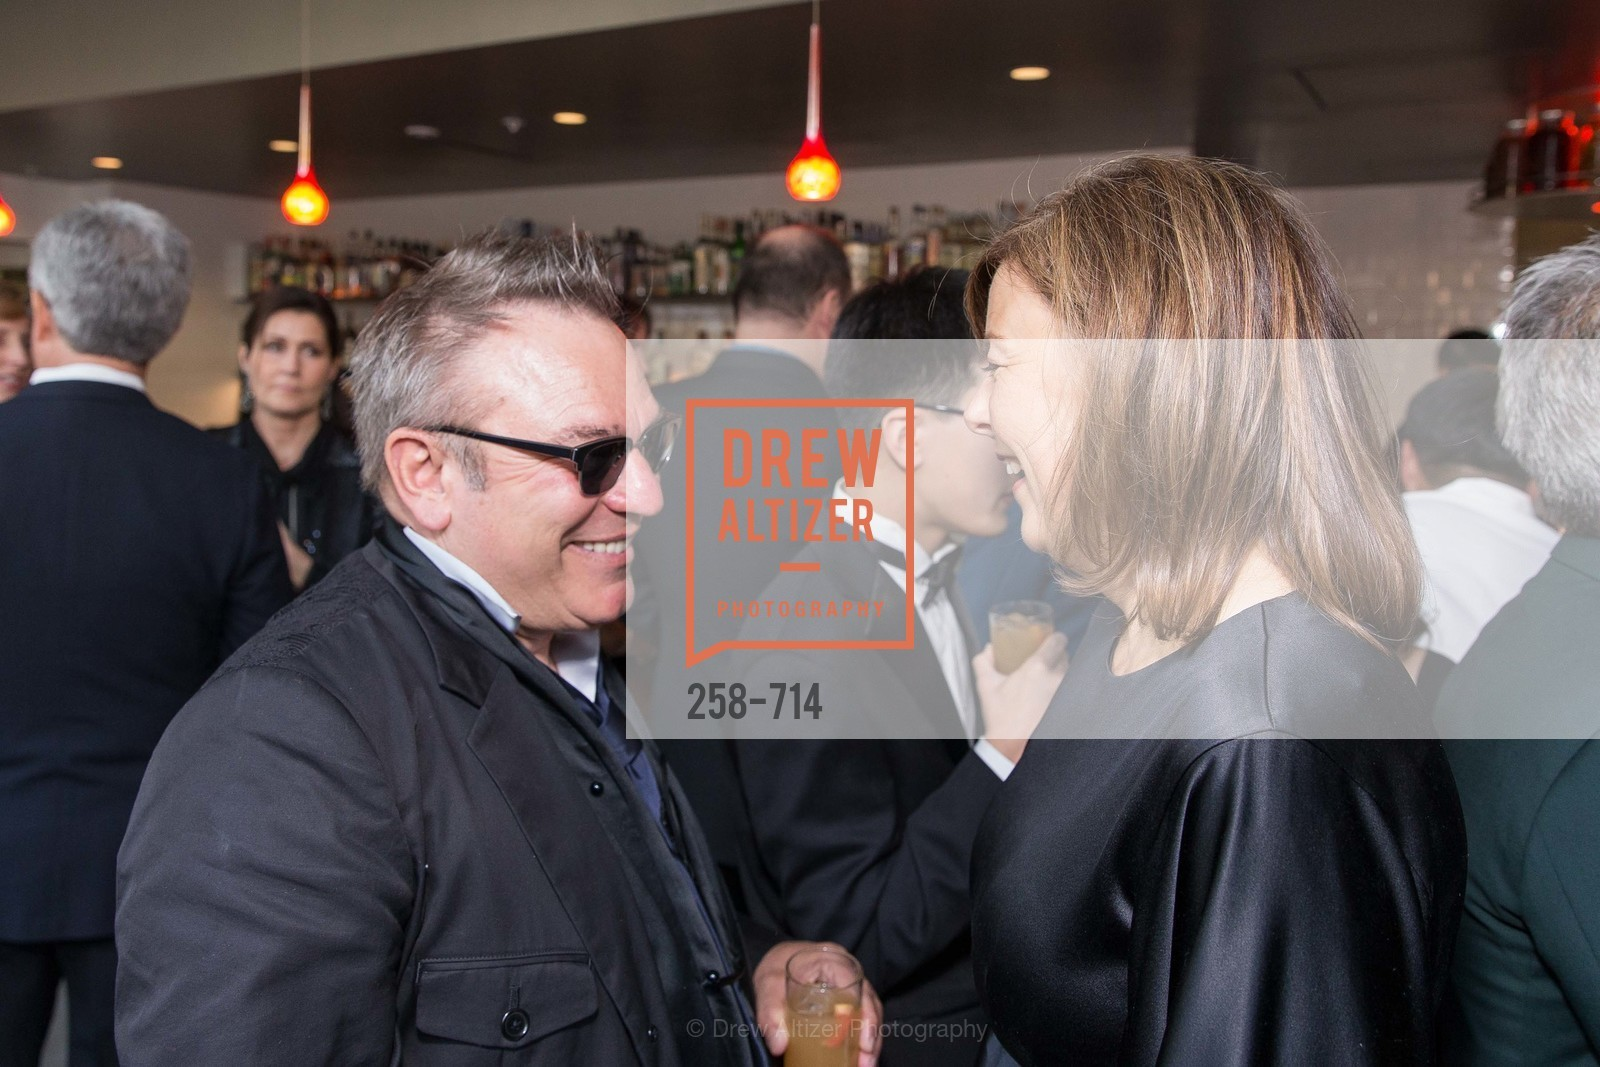 Stanlee Gatti, Lindsay Tusk, SFJAZZ Gala 2015 Honors Joni Mitchell with Lifetime Achievement Award, US, May 9th, 2015,Drew Altizer, Drew Altizer Photography, full-service agency, private events, San Francisco photographer, photographer california